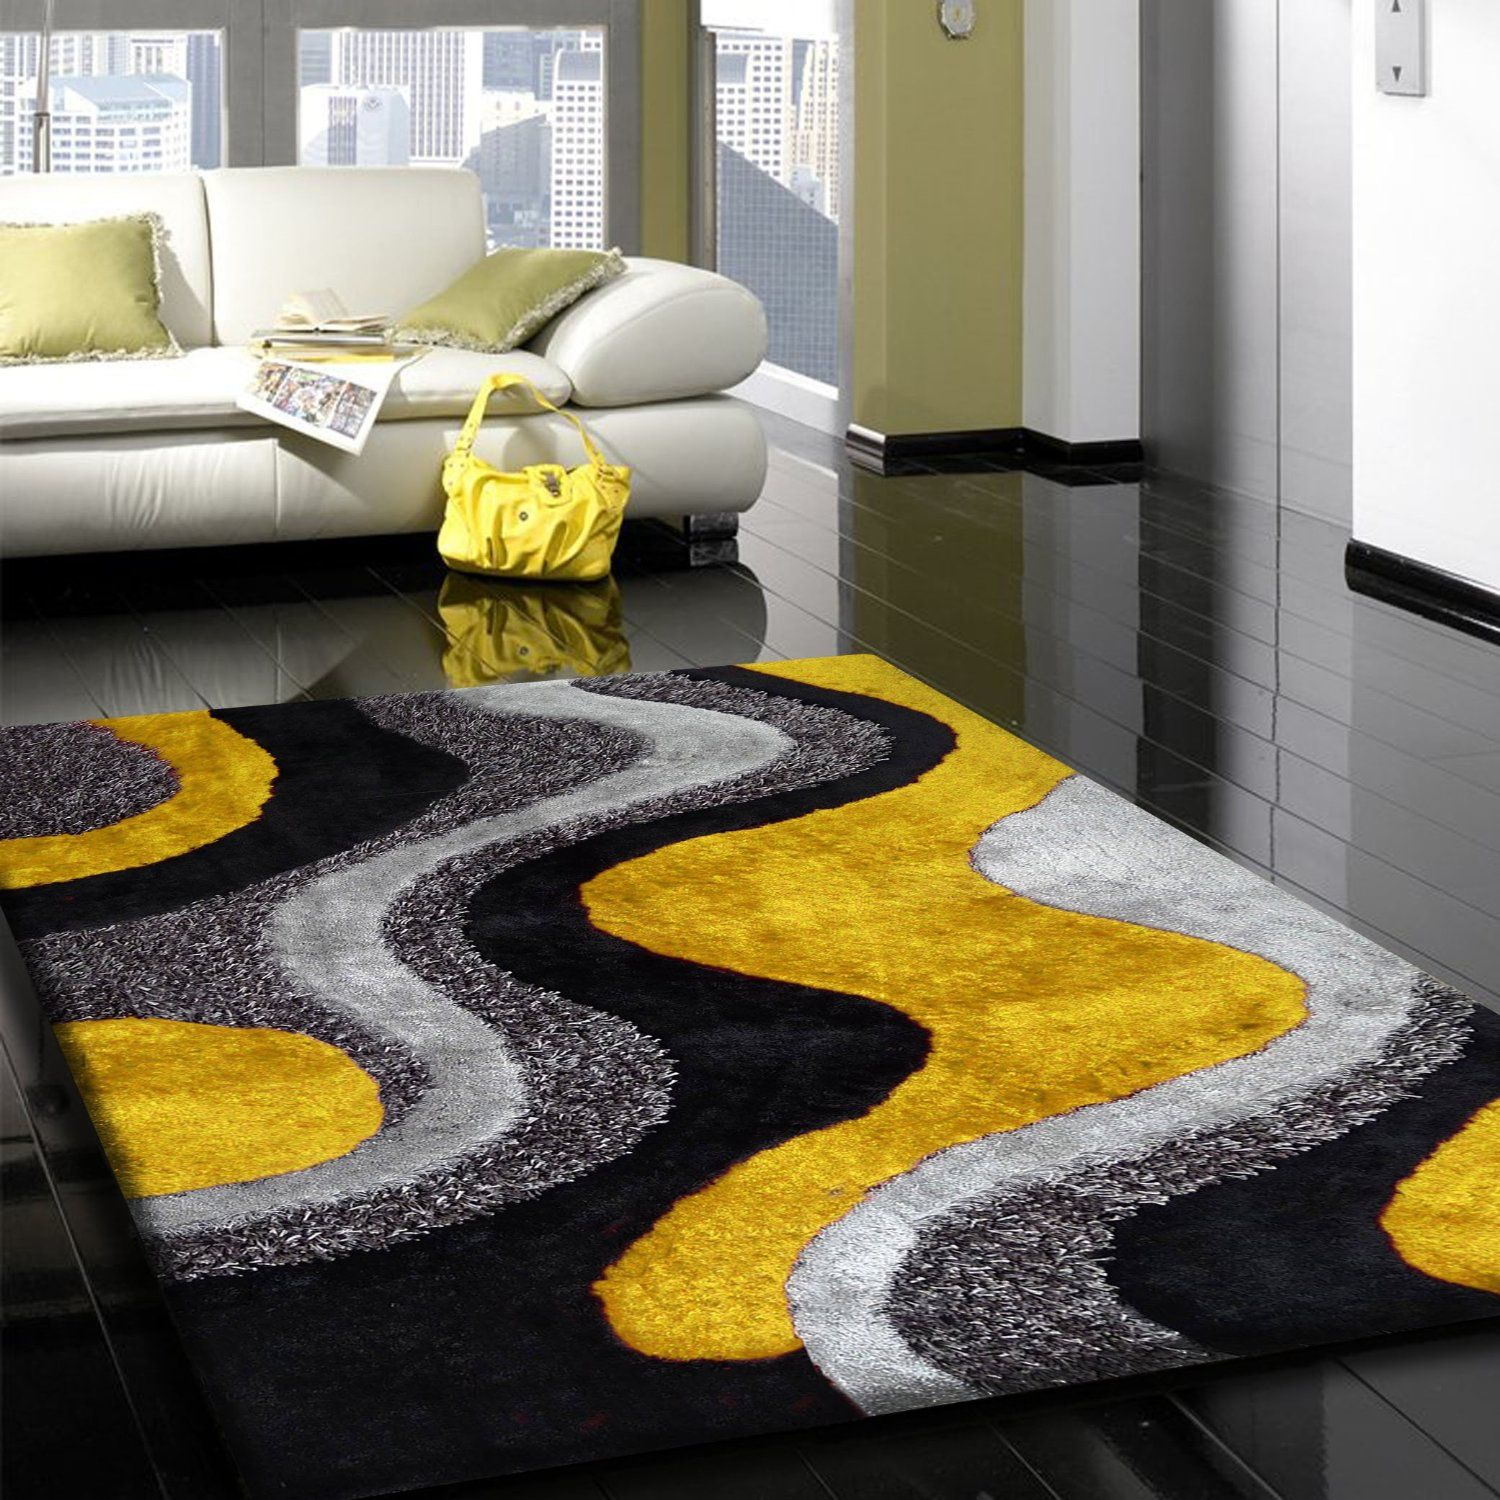 Best Wonderful Grey Sh*G Rug For Floor Decor Ideas Black 400 x 300